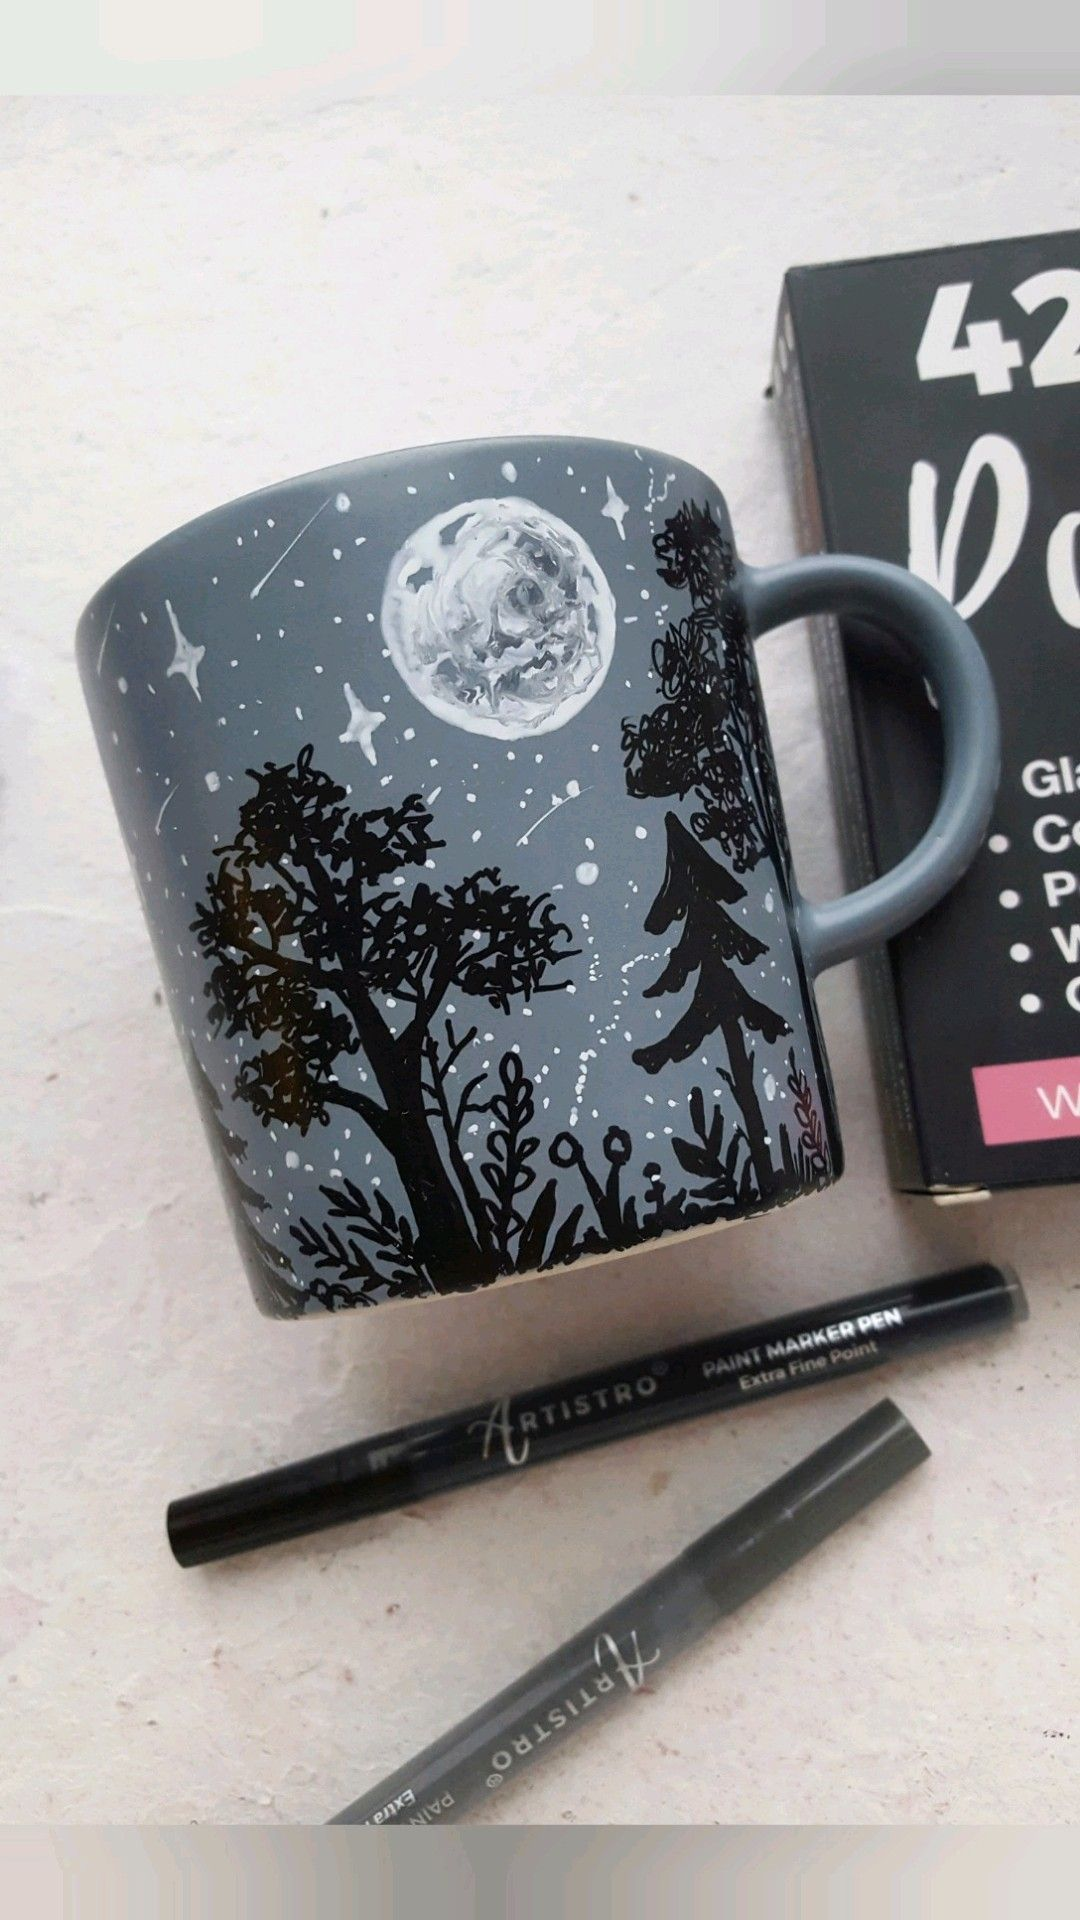 Creative Mug Painting Design of the Moon